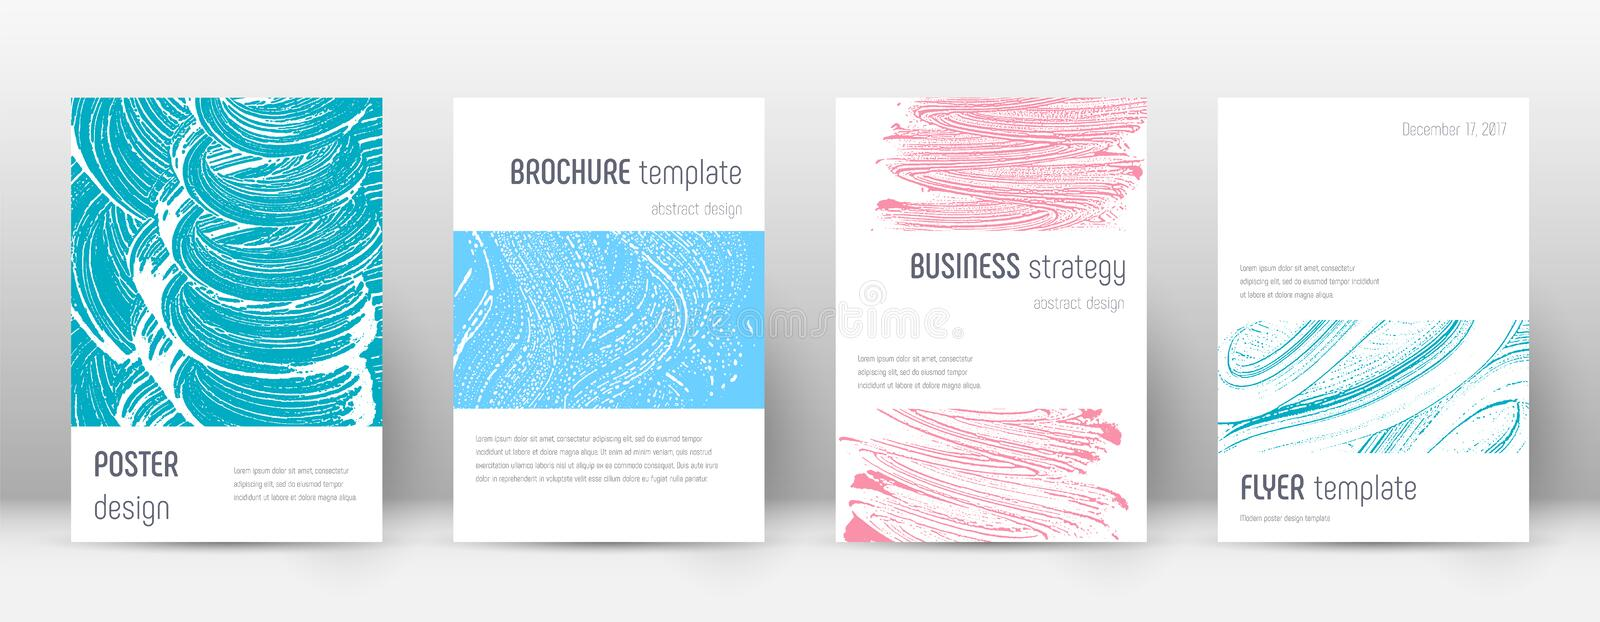 Cover page design template. Minimalistic brochure. Layout. Classy trendy abstract cover page. Pink and blue grunge texture background. Astonishing poster stock illustration